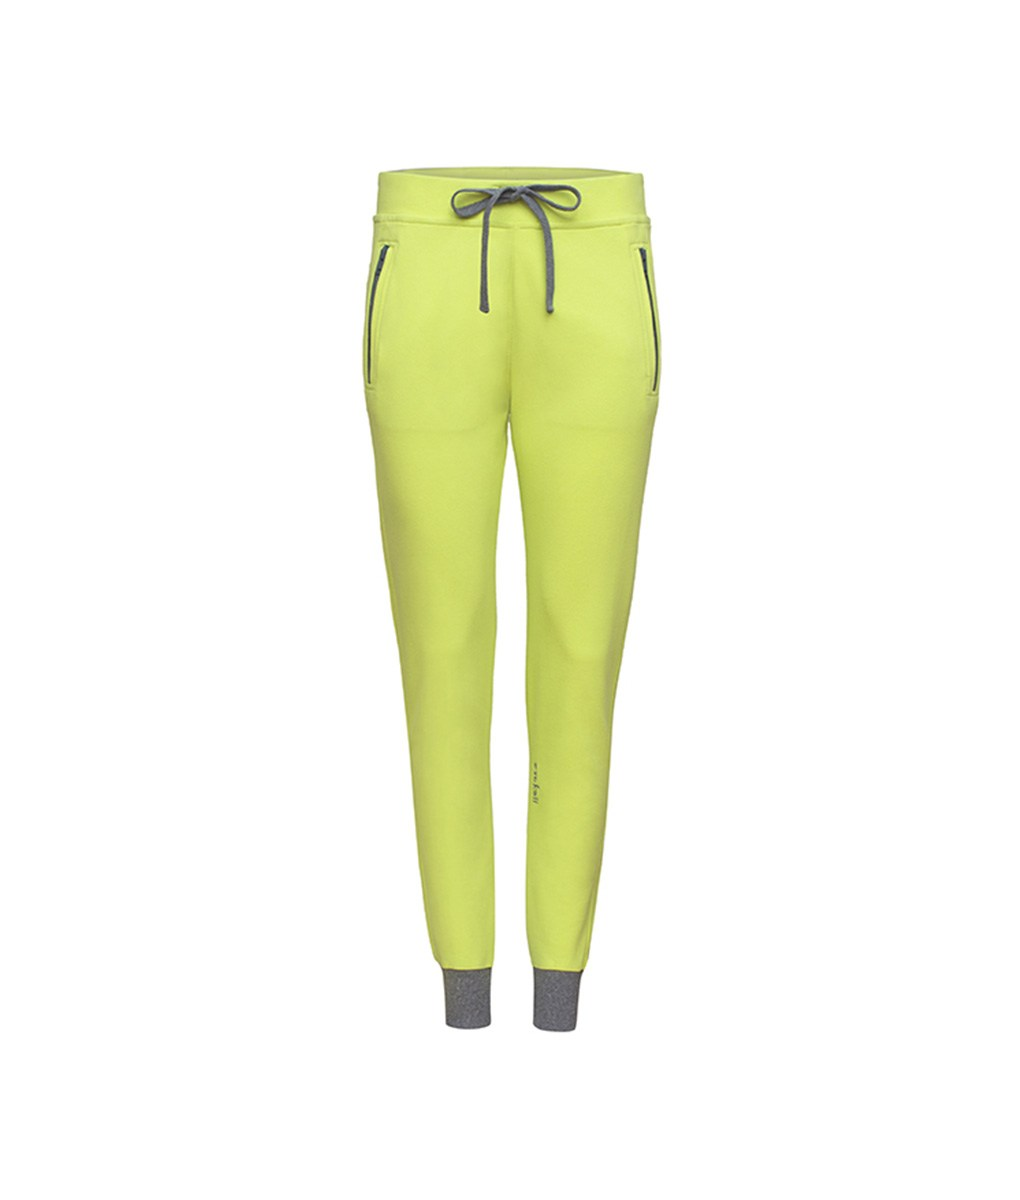 Evokaii Women Surf Style Pants Mermaid Green Front